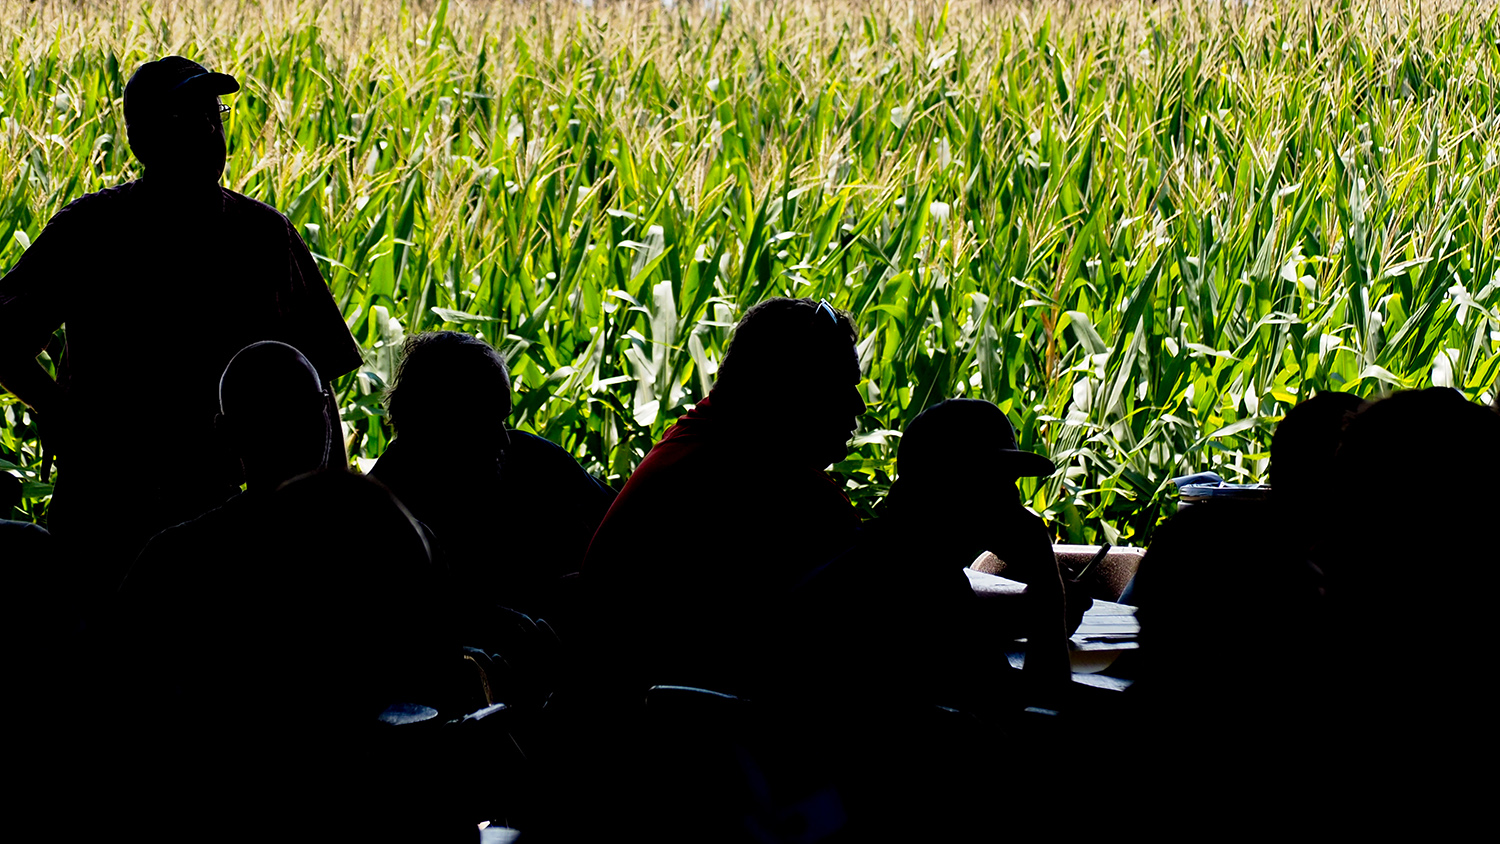 Photo of crops in background with farmers in foreground.